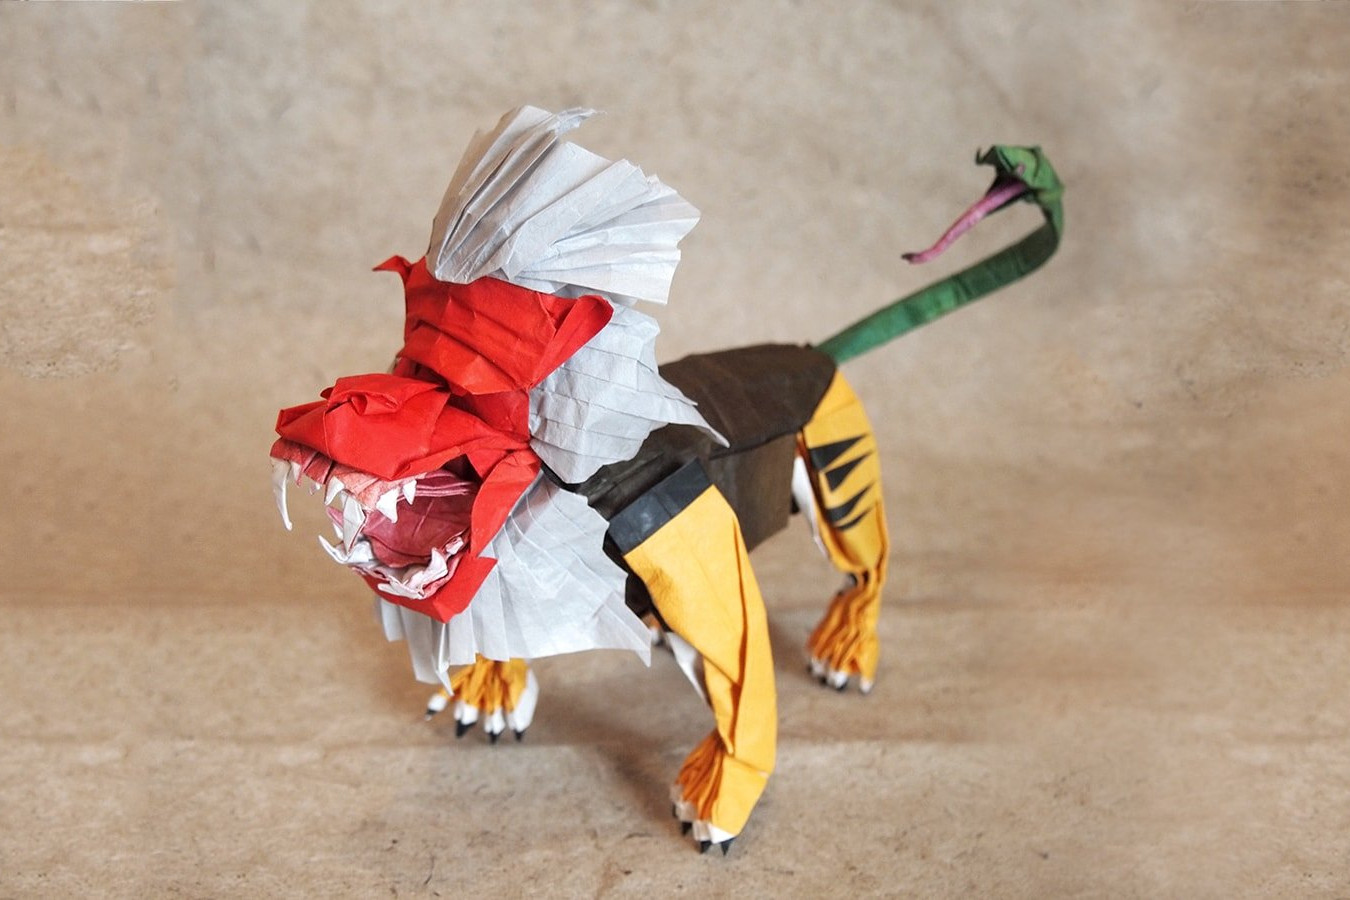 Amazing Mythological Origami Creations You Have to See to Believe